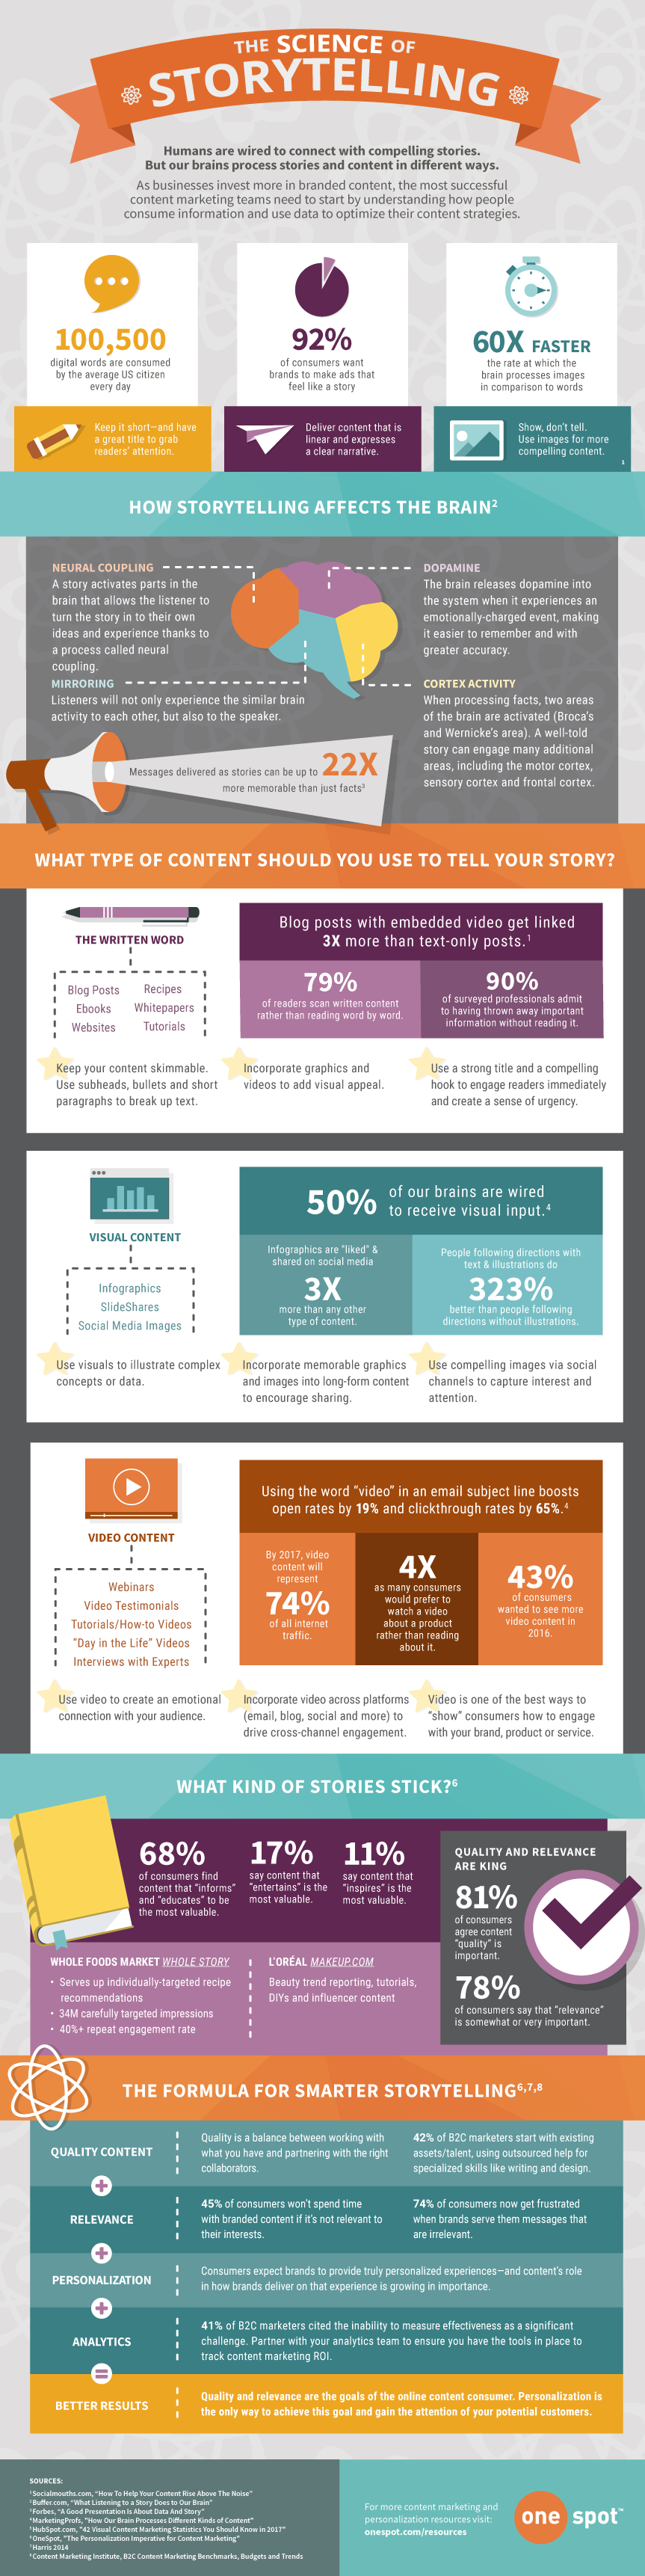 INFOGRAPHIC: The Science of Storytelling